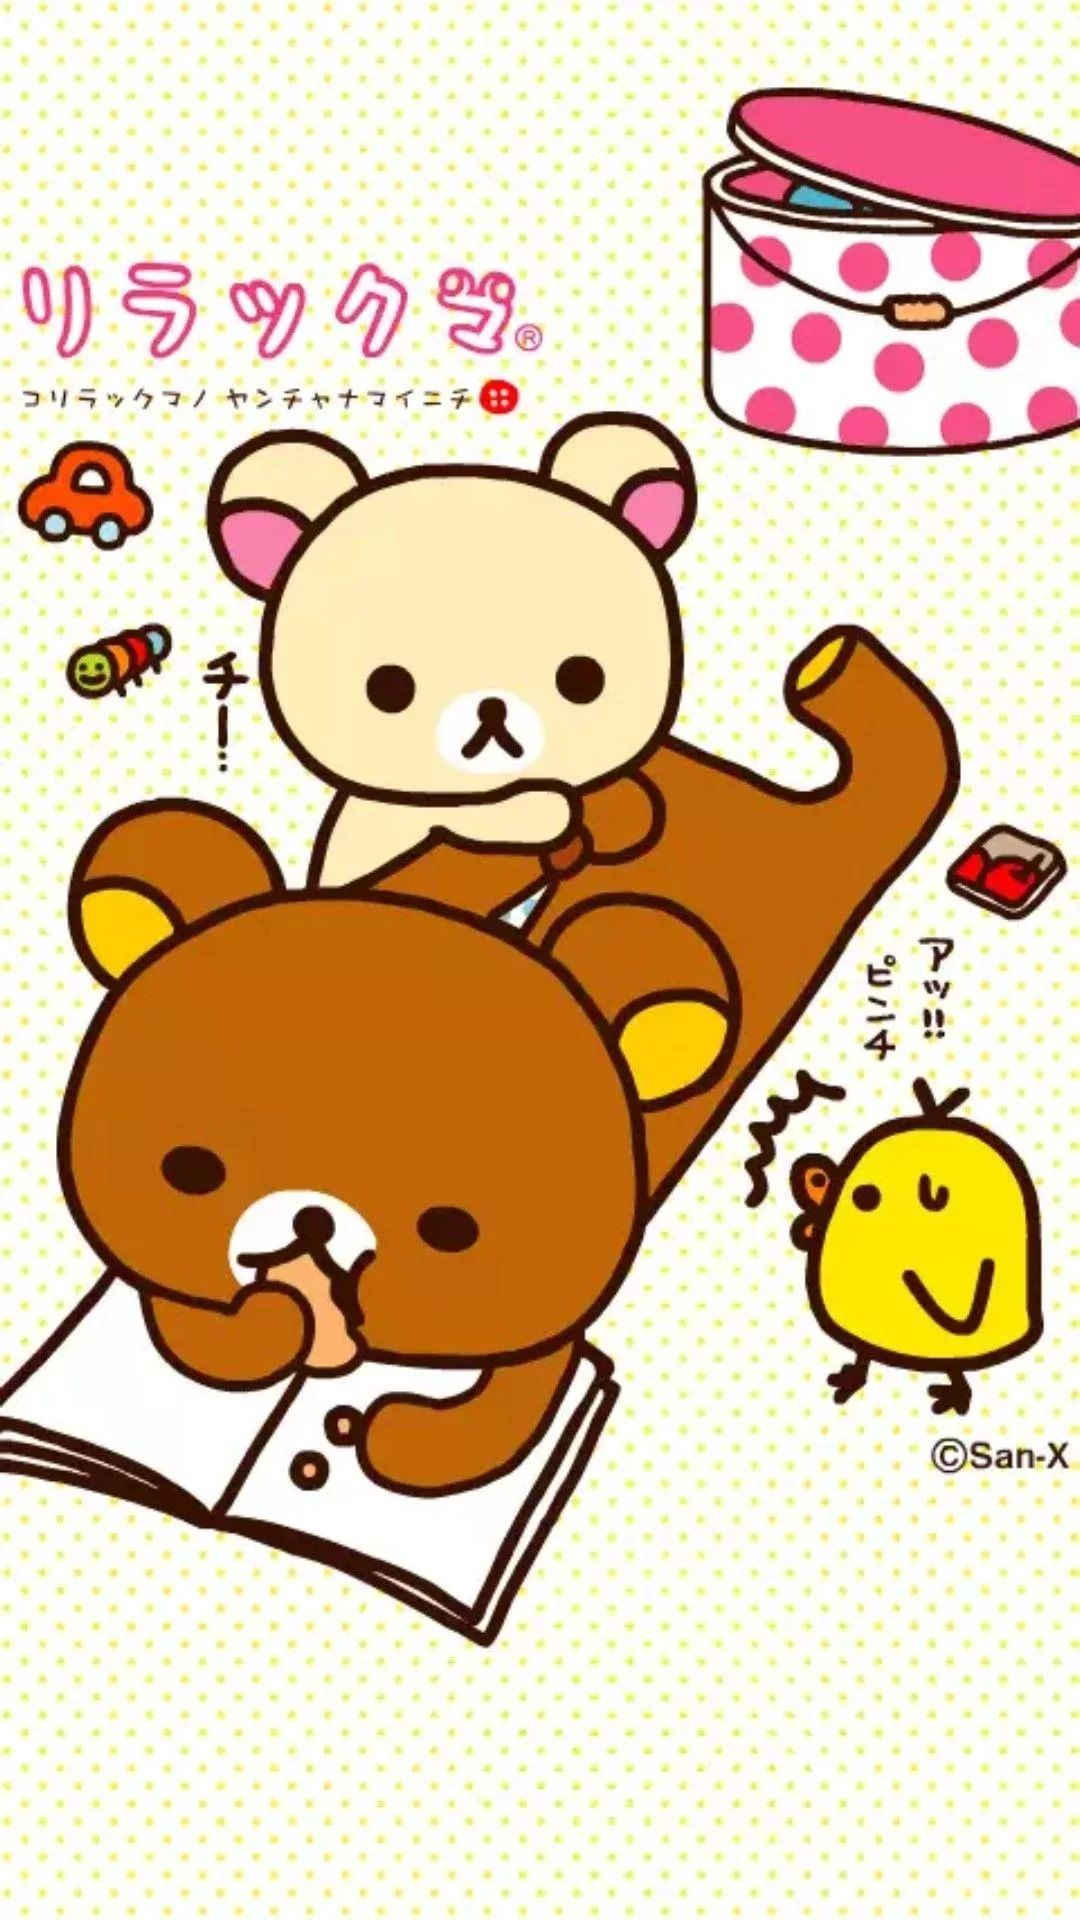 Rilakkuma hd wallpaper